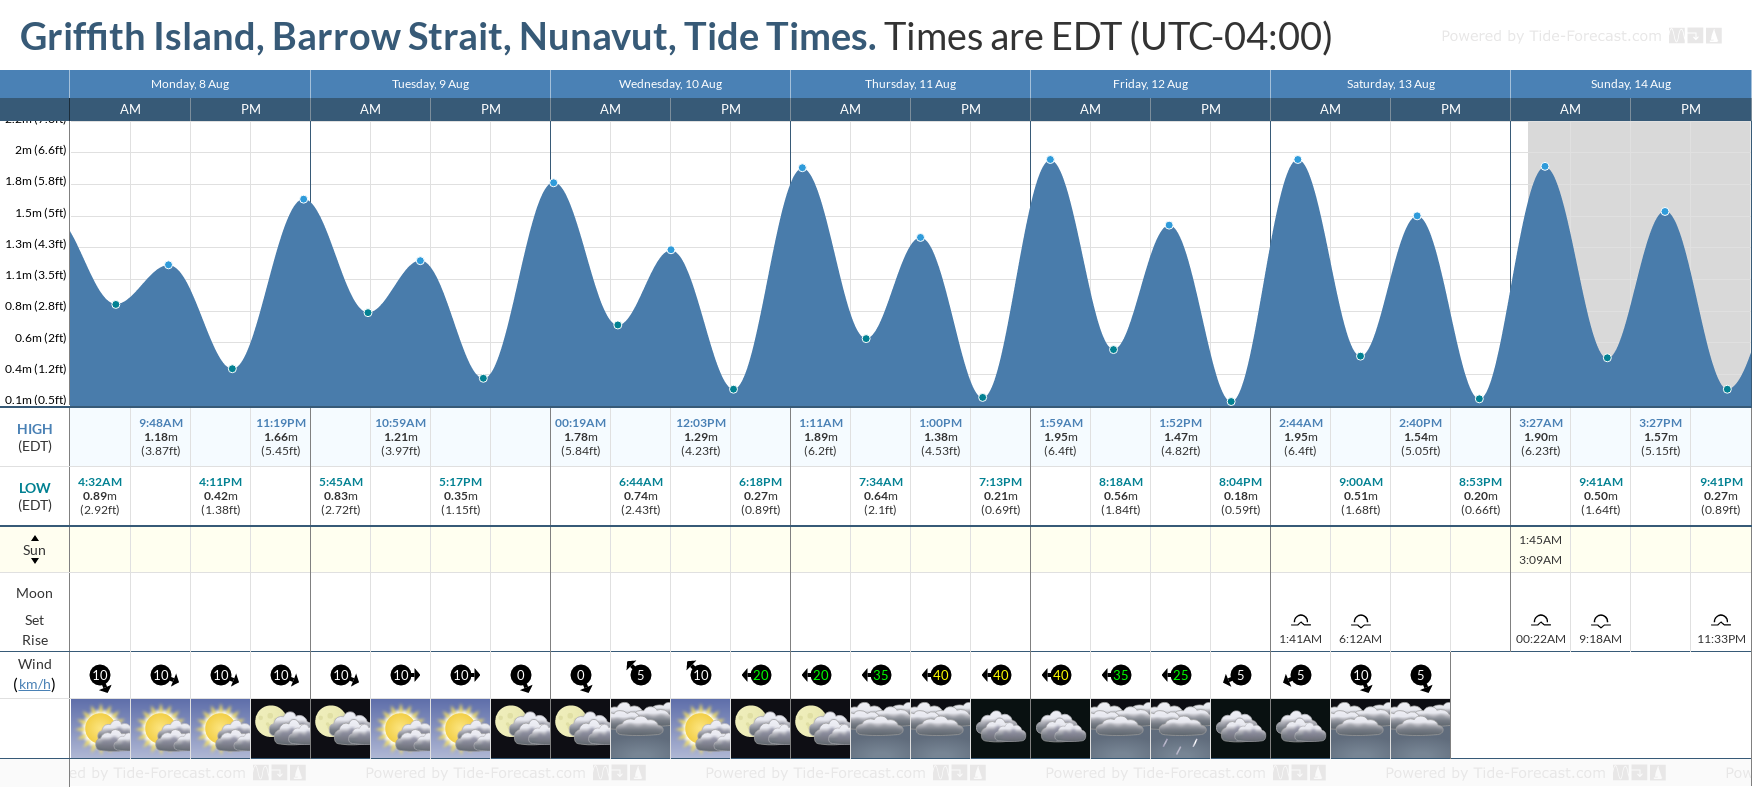 Griffith Island, Barrow Strait, Nunavut Tide Chart including high and low tide tide times for the next 7 days